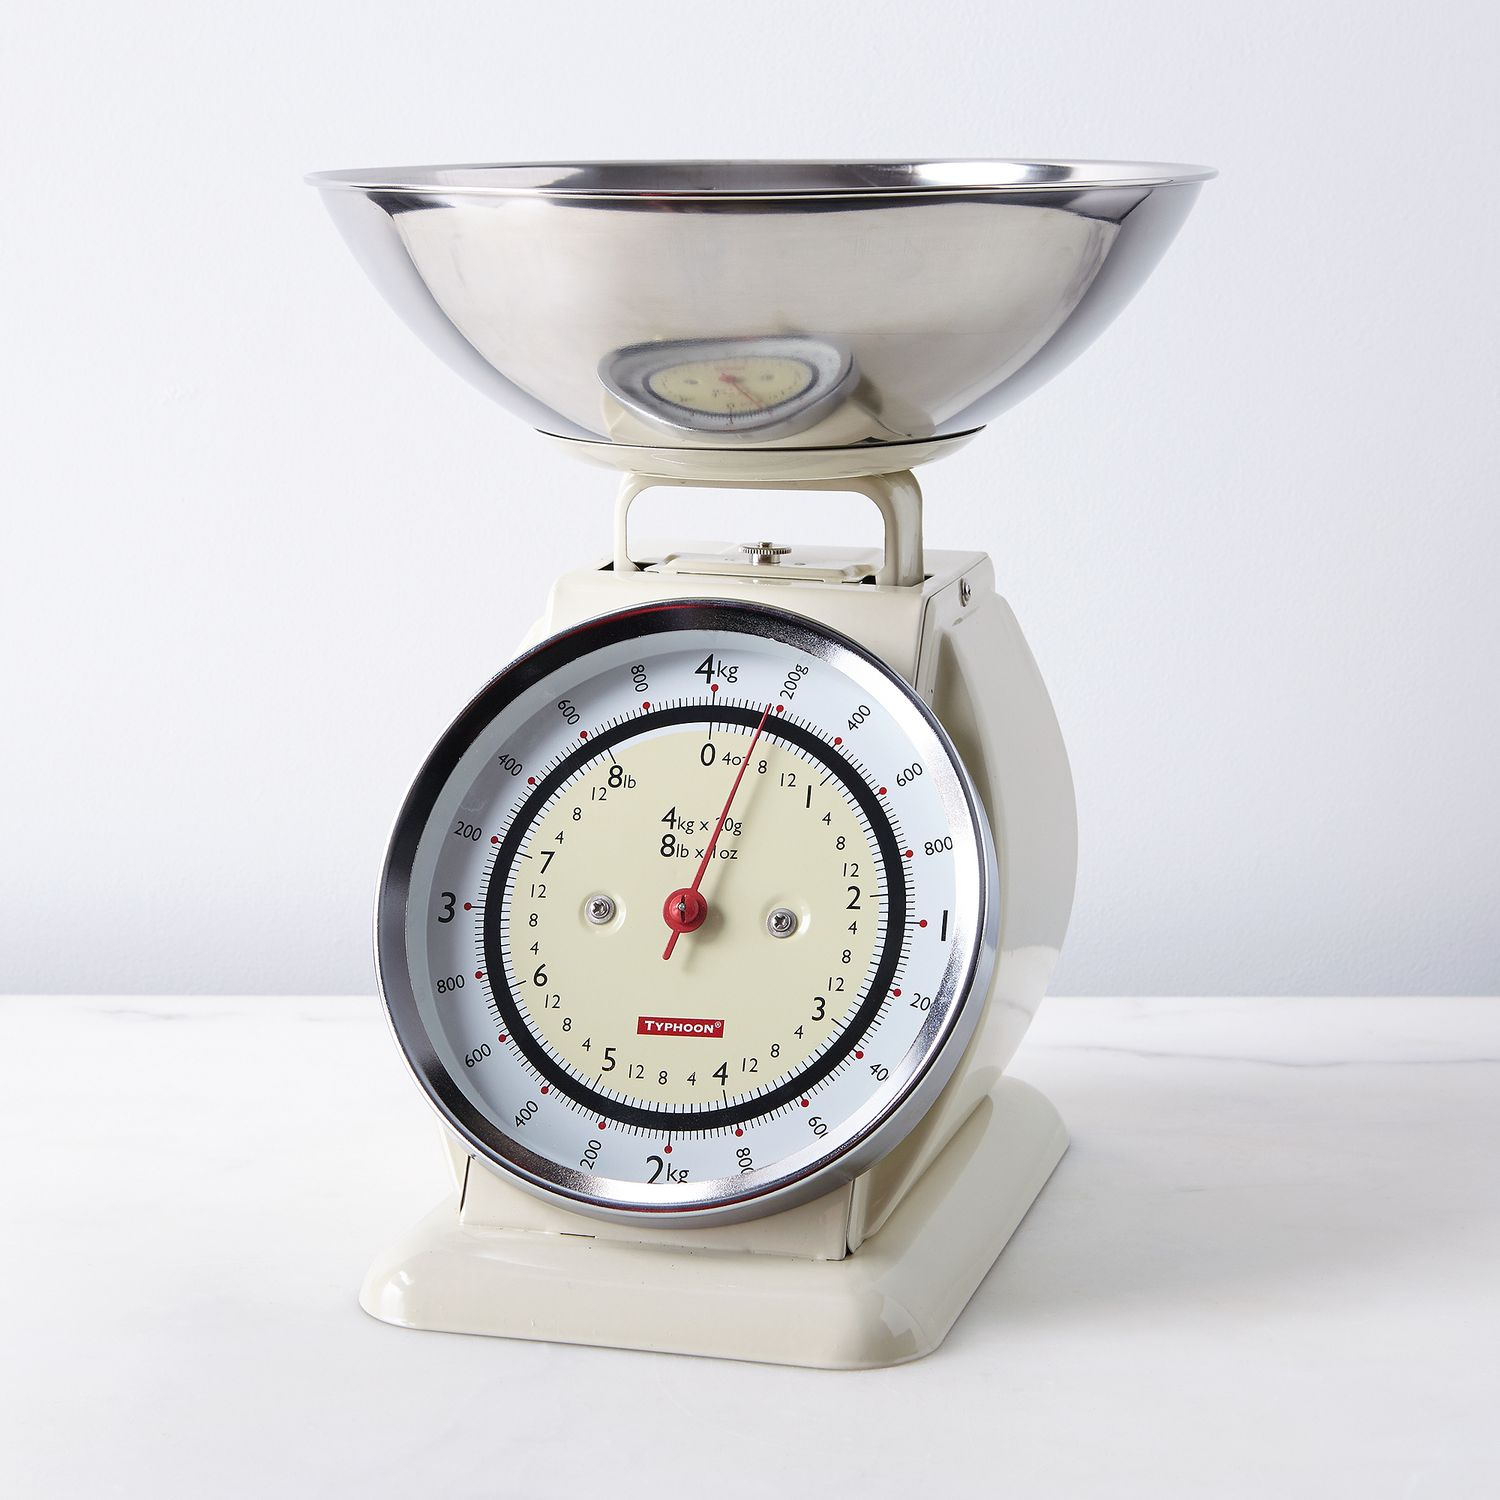 Vintage-Style Kitchen Scale With Removable Bowl On Food52